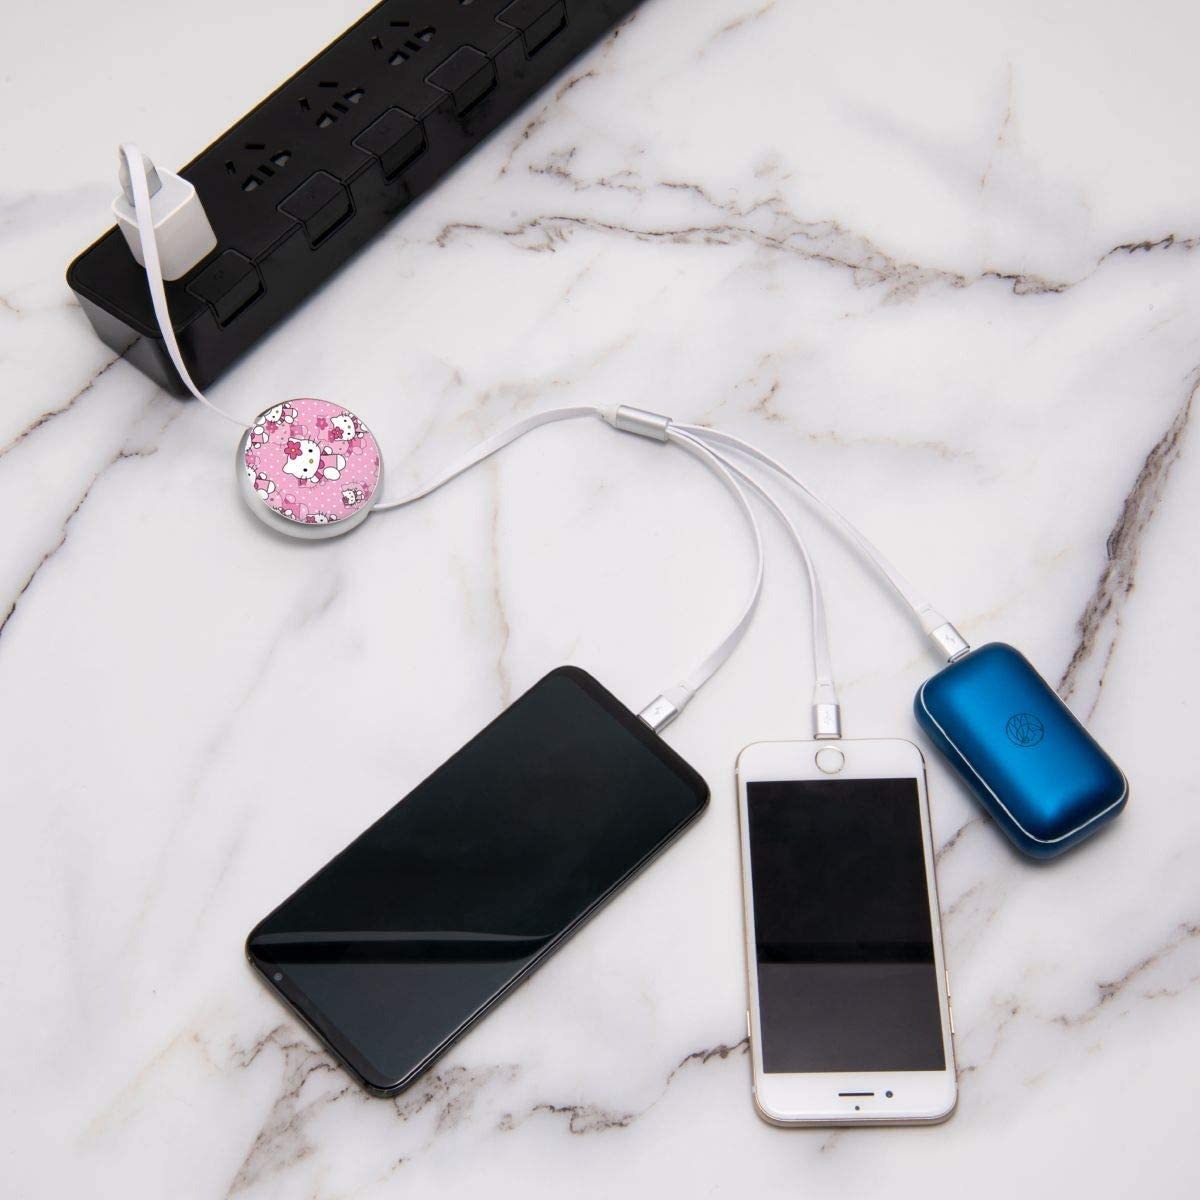 Hello Kitty USB Cable Three-in-One Round Charger Telescopic Data Multifunction Cable